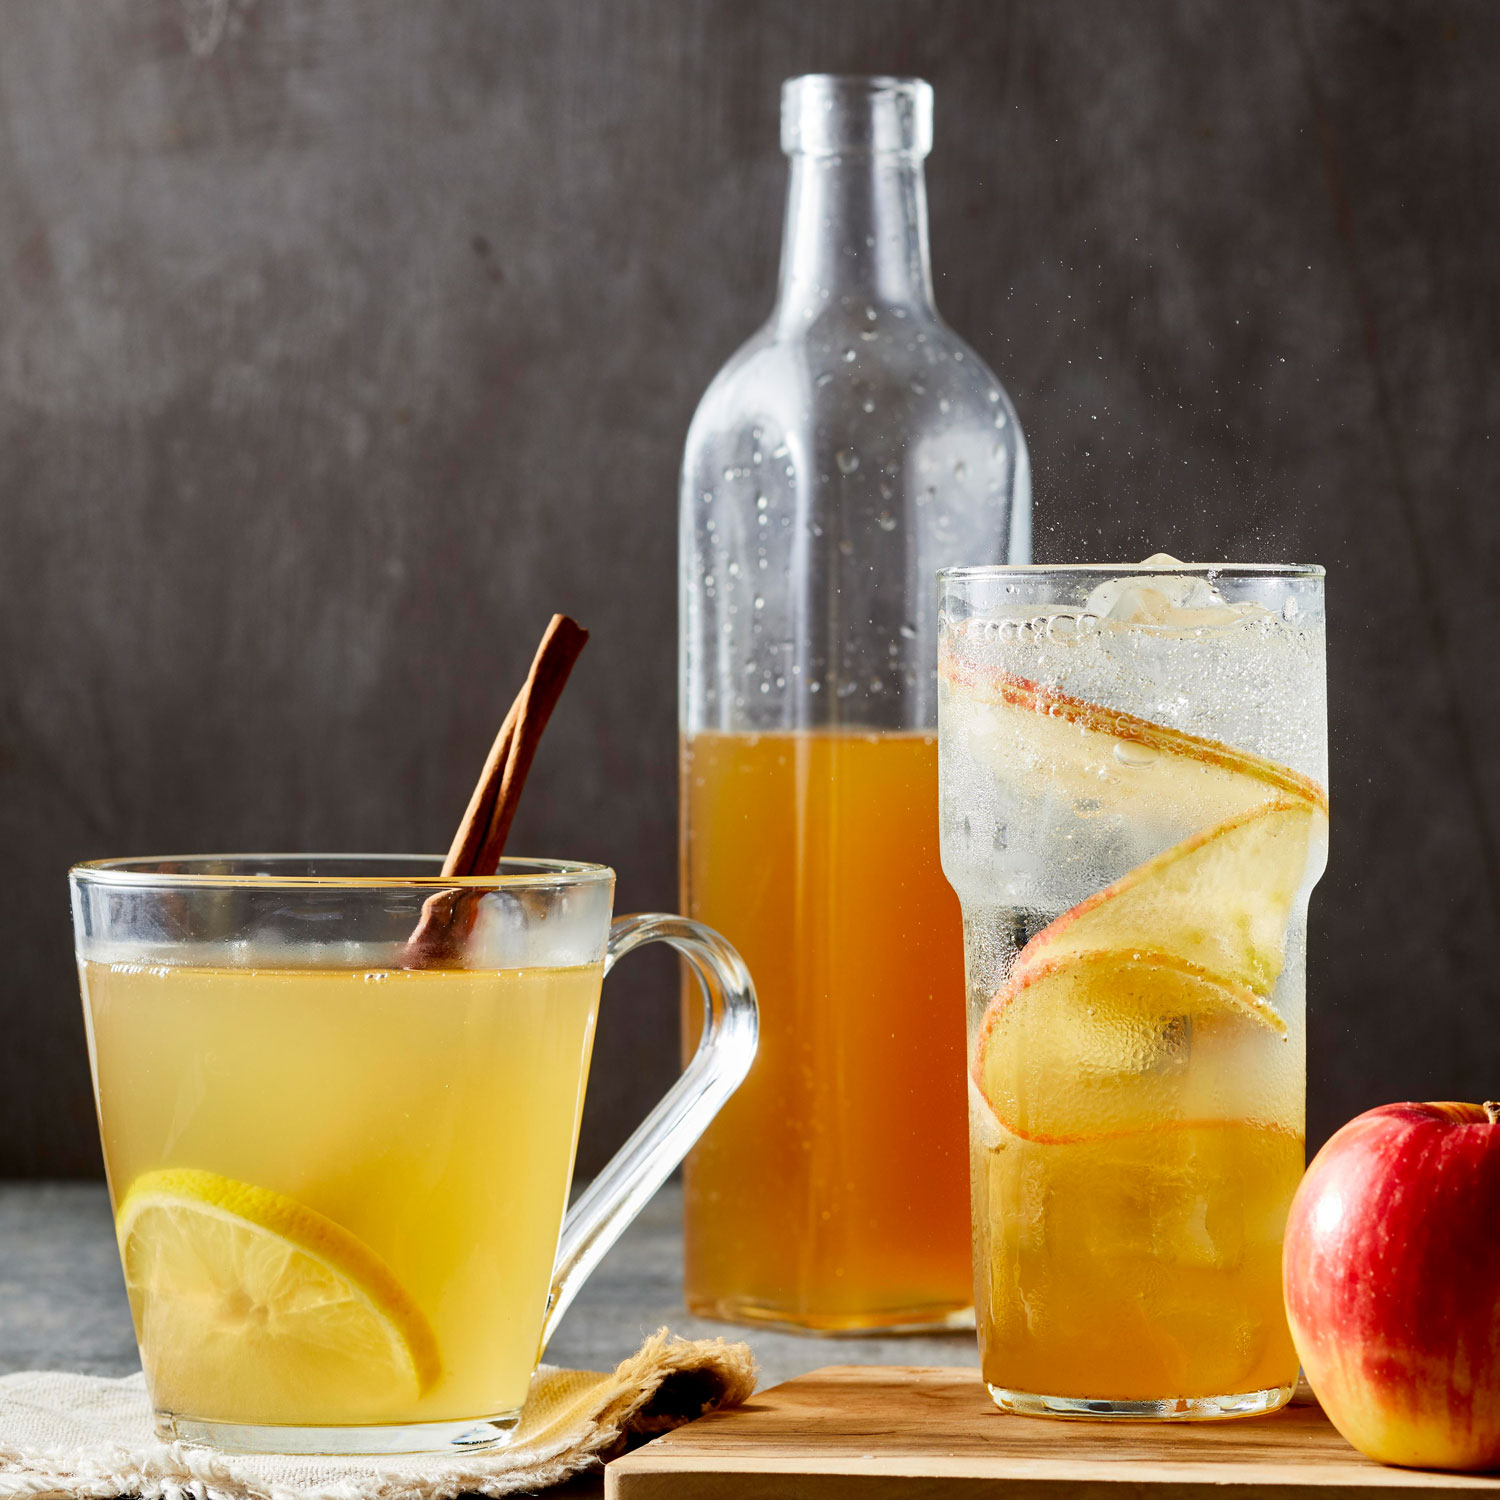 Tingling with fennel and allspice and infused with a pound of apples, chef Jonathon Sawyer's shrub (an old-timey drink mixer) evokes the taste of spiced cider in a sourful new-old way. The recipe comes from his cookbook House of Vinegar.